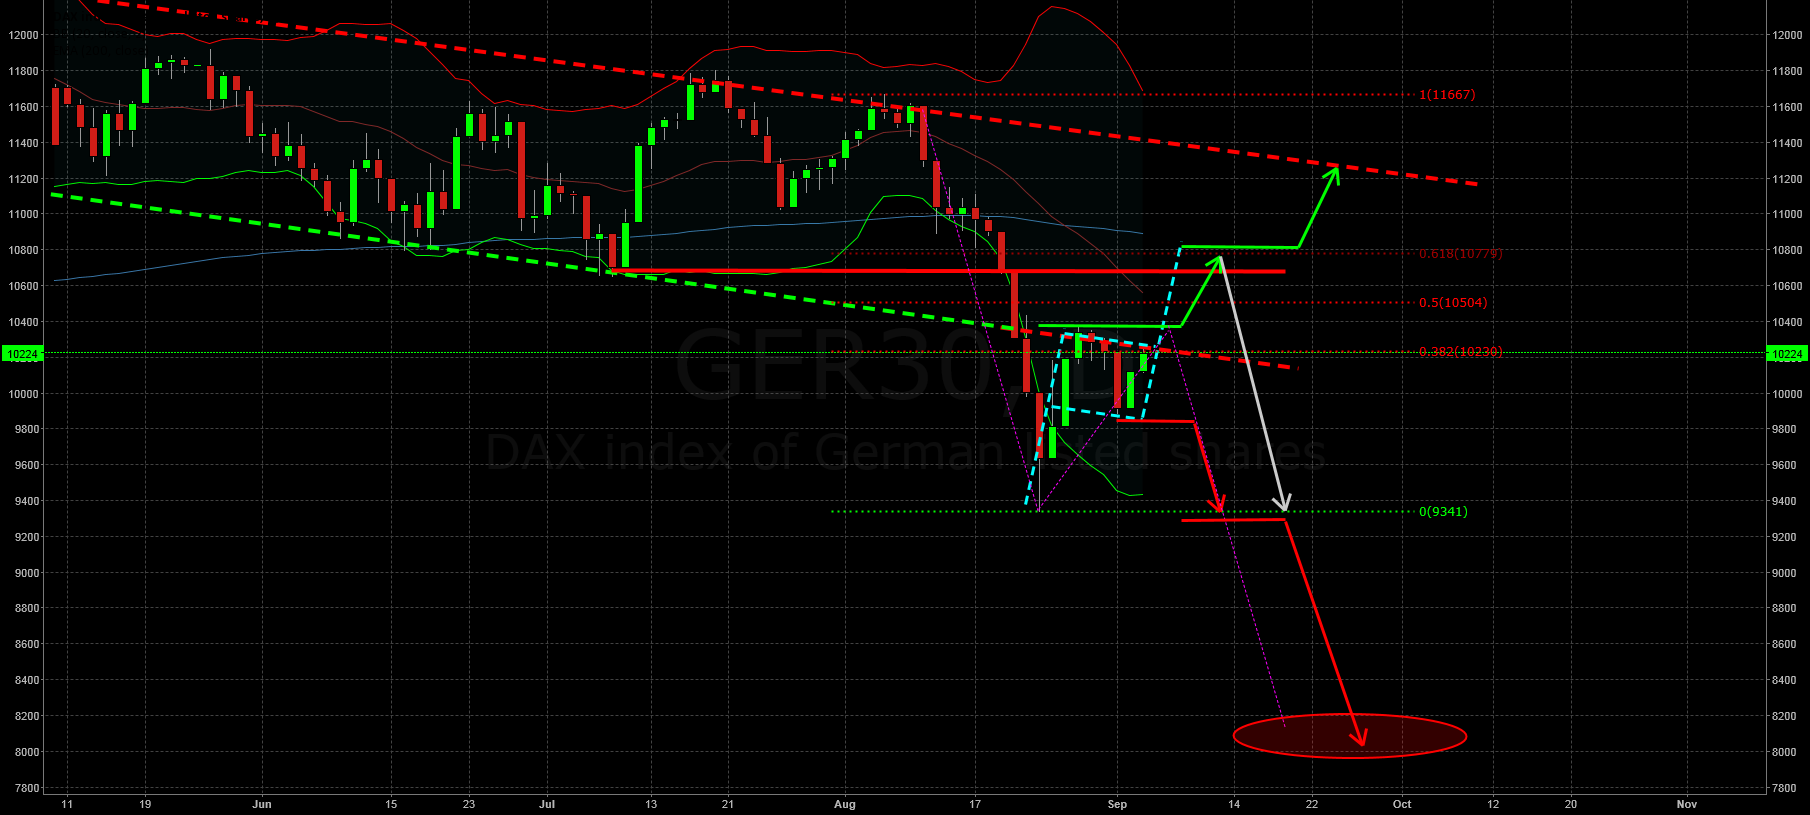 Correction completed or do we see just a Dead Cat Bounce?